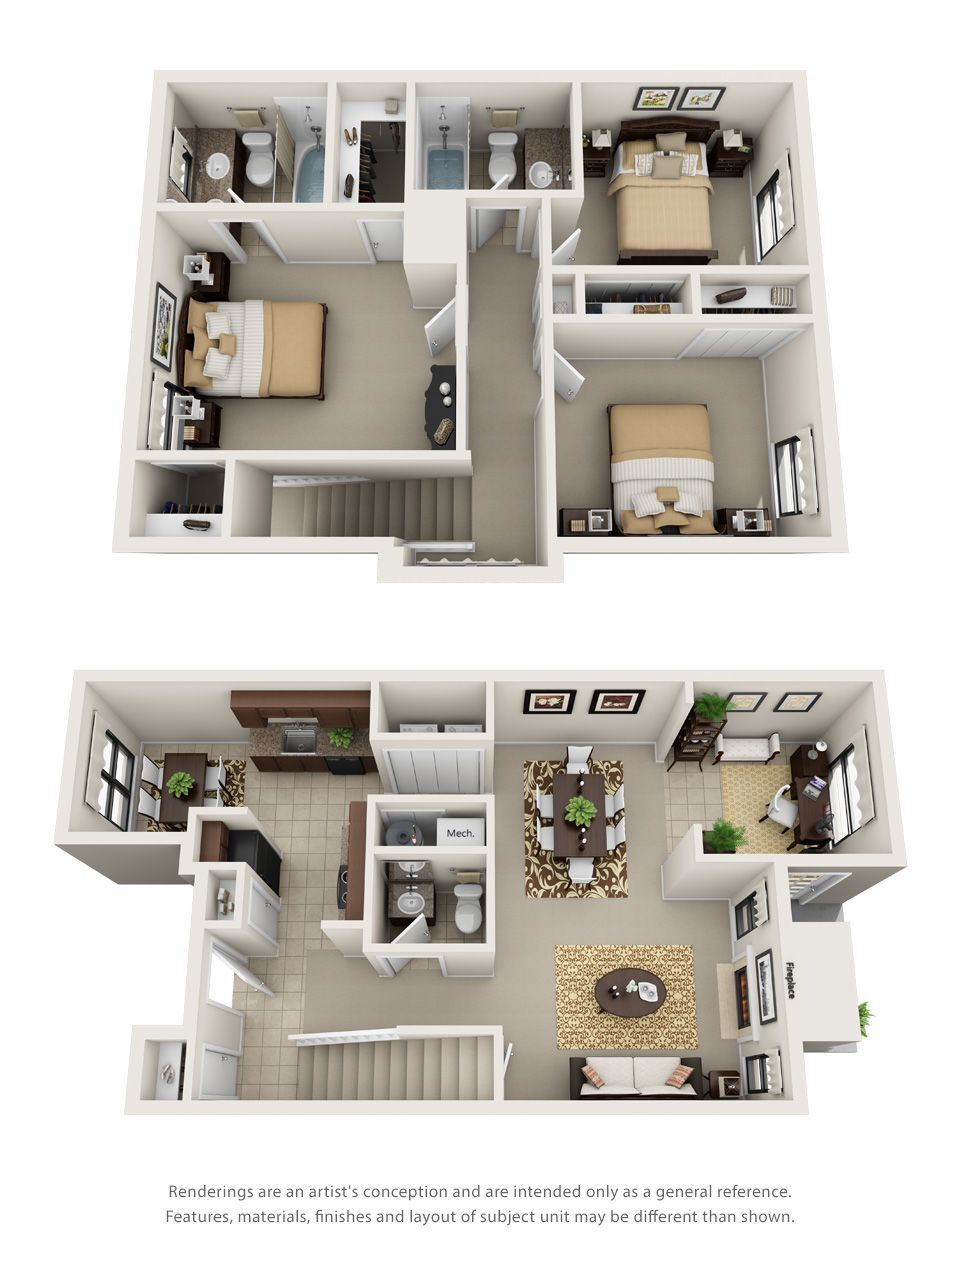 1 2 3 Bedroom Apartments In Hoover Al Floor Plans Hoover Alabama Apa Alabama Apa Apartmen In 2020 Apartment Layout Apartment Design House Layout Plans